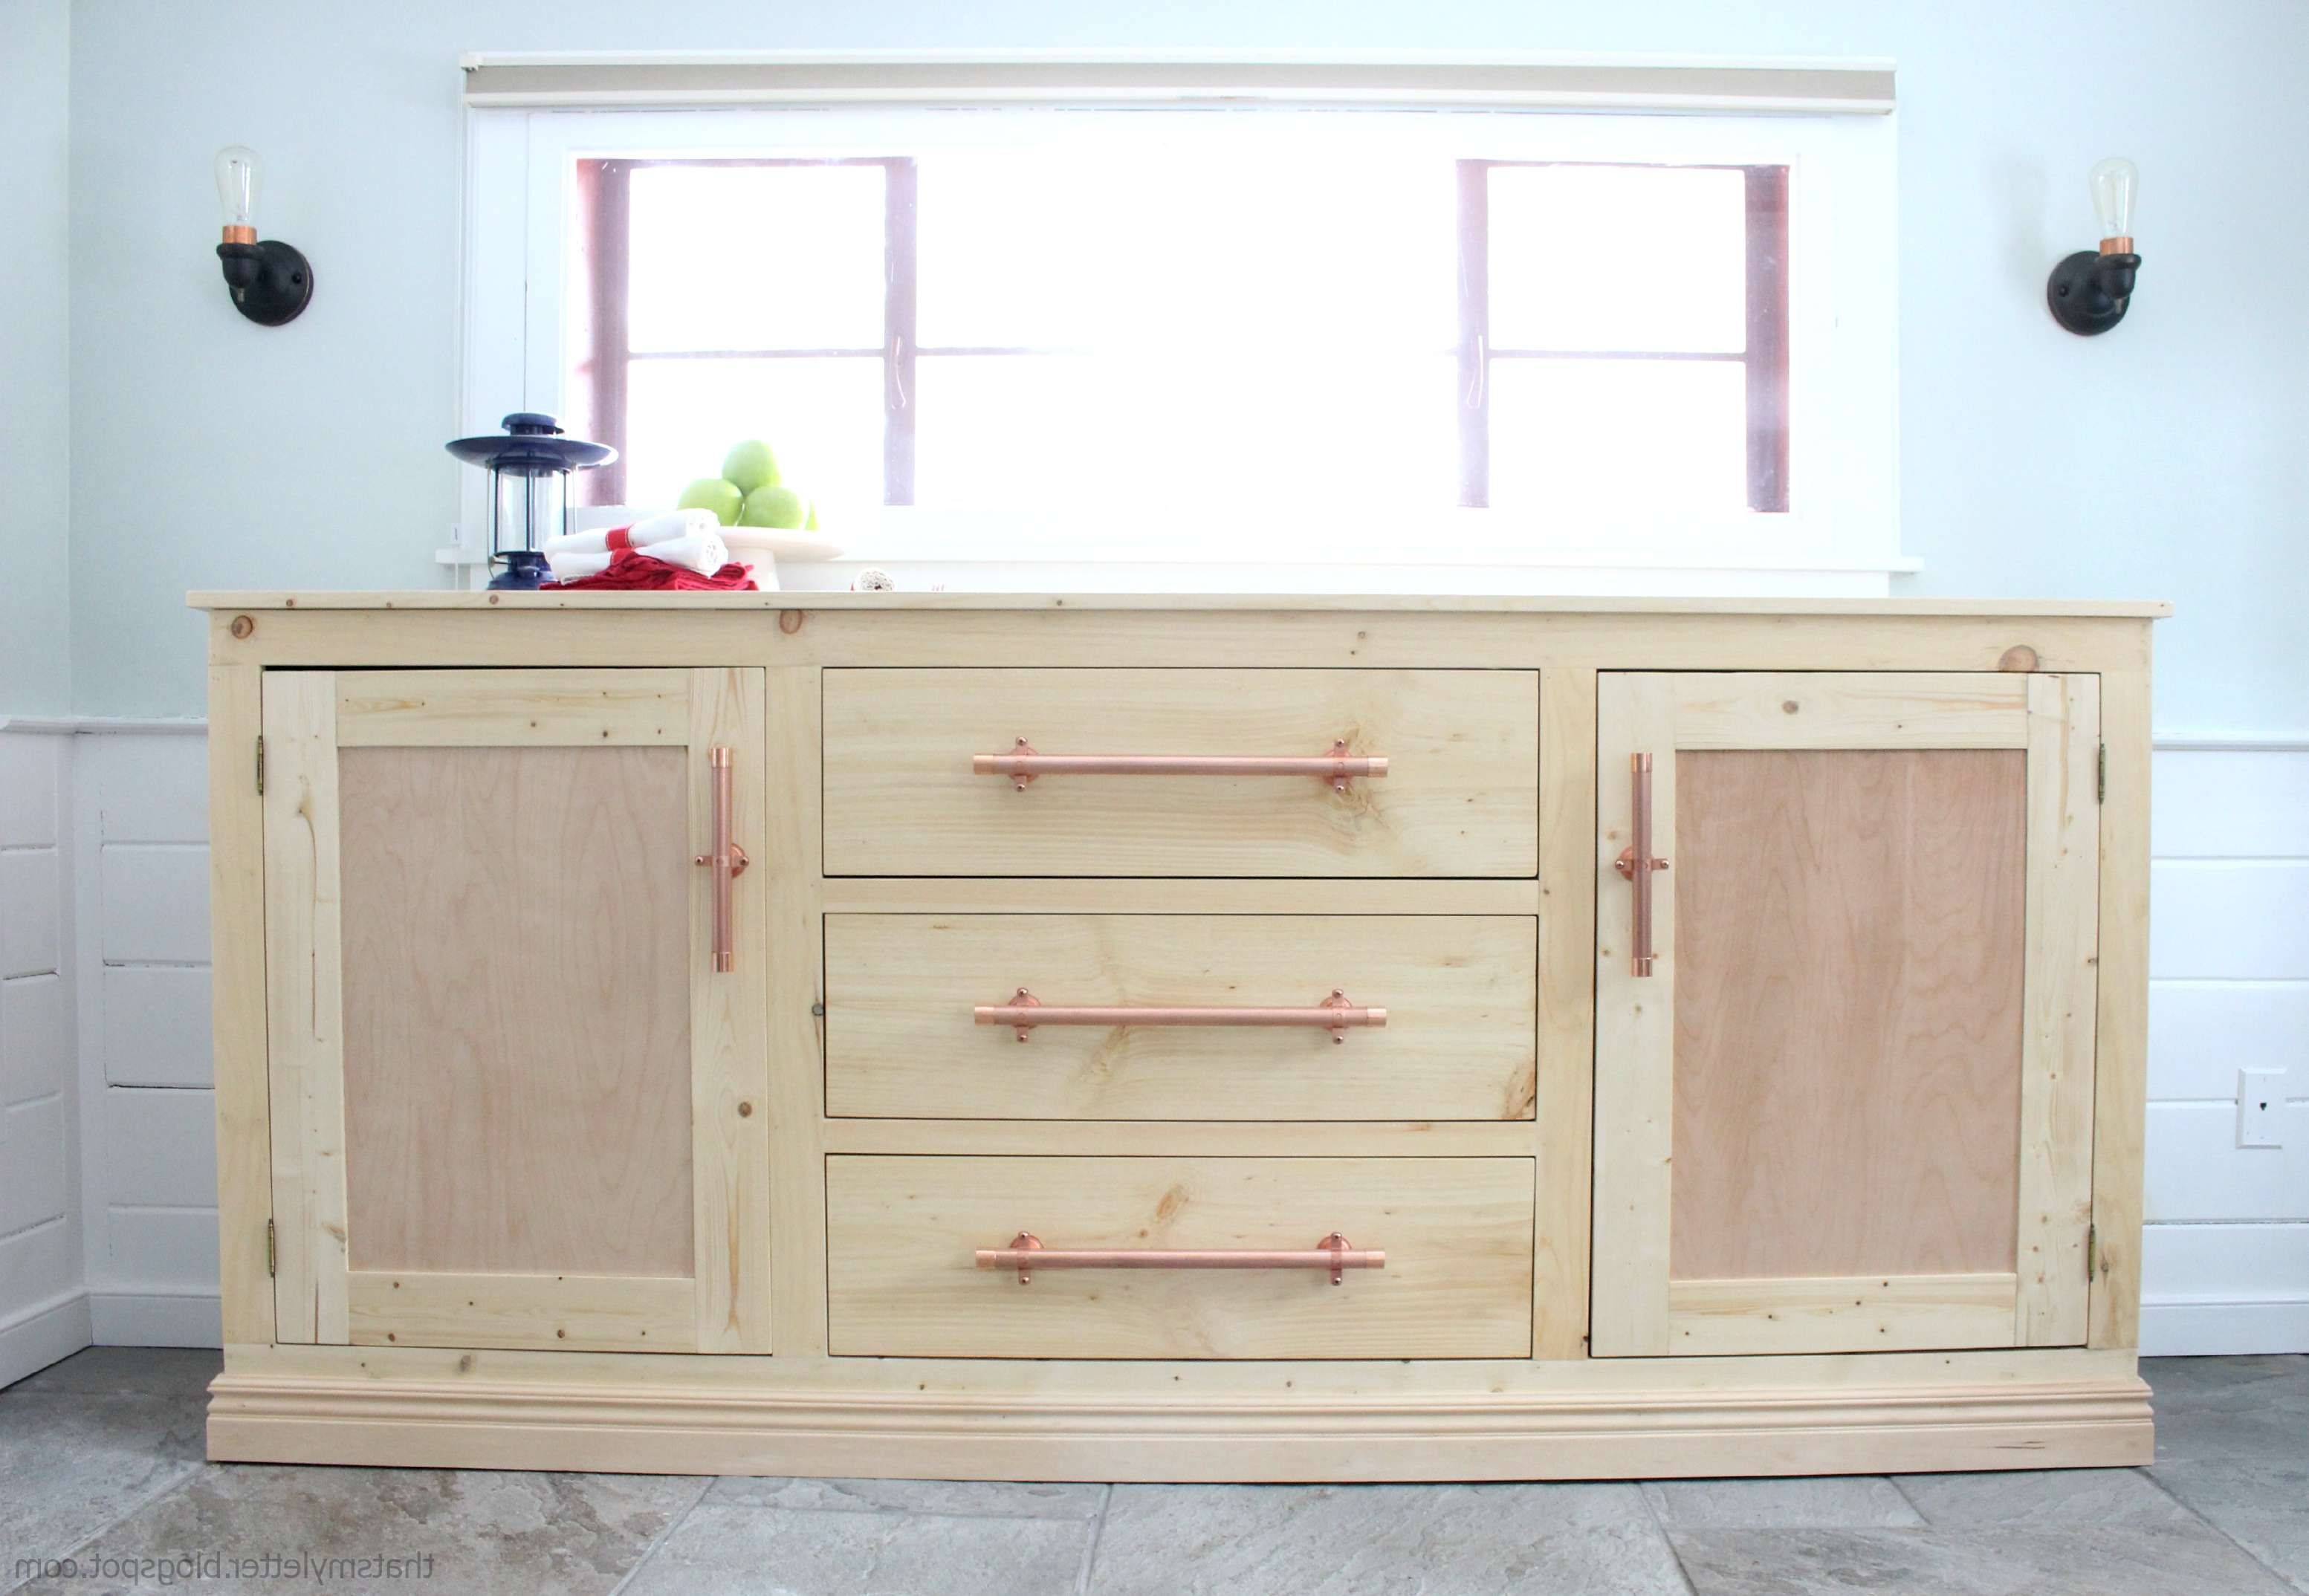 Ana White | Extra Long Buffet Cabinet – Diy Projects In Glass Door Buffet Sideboards (View 6 of 20)